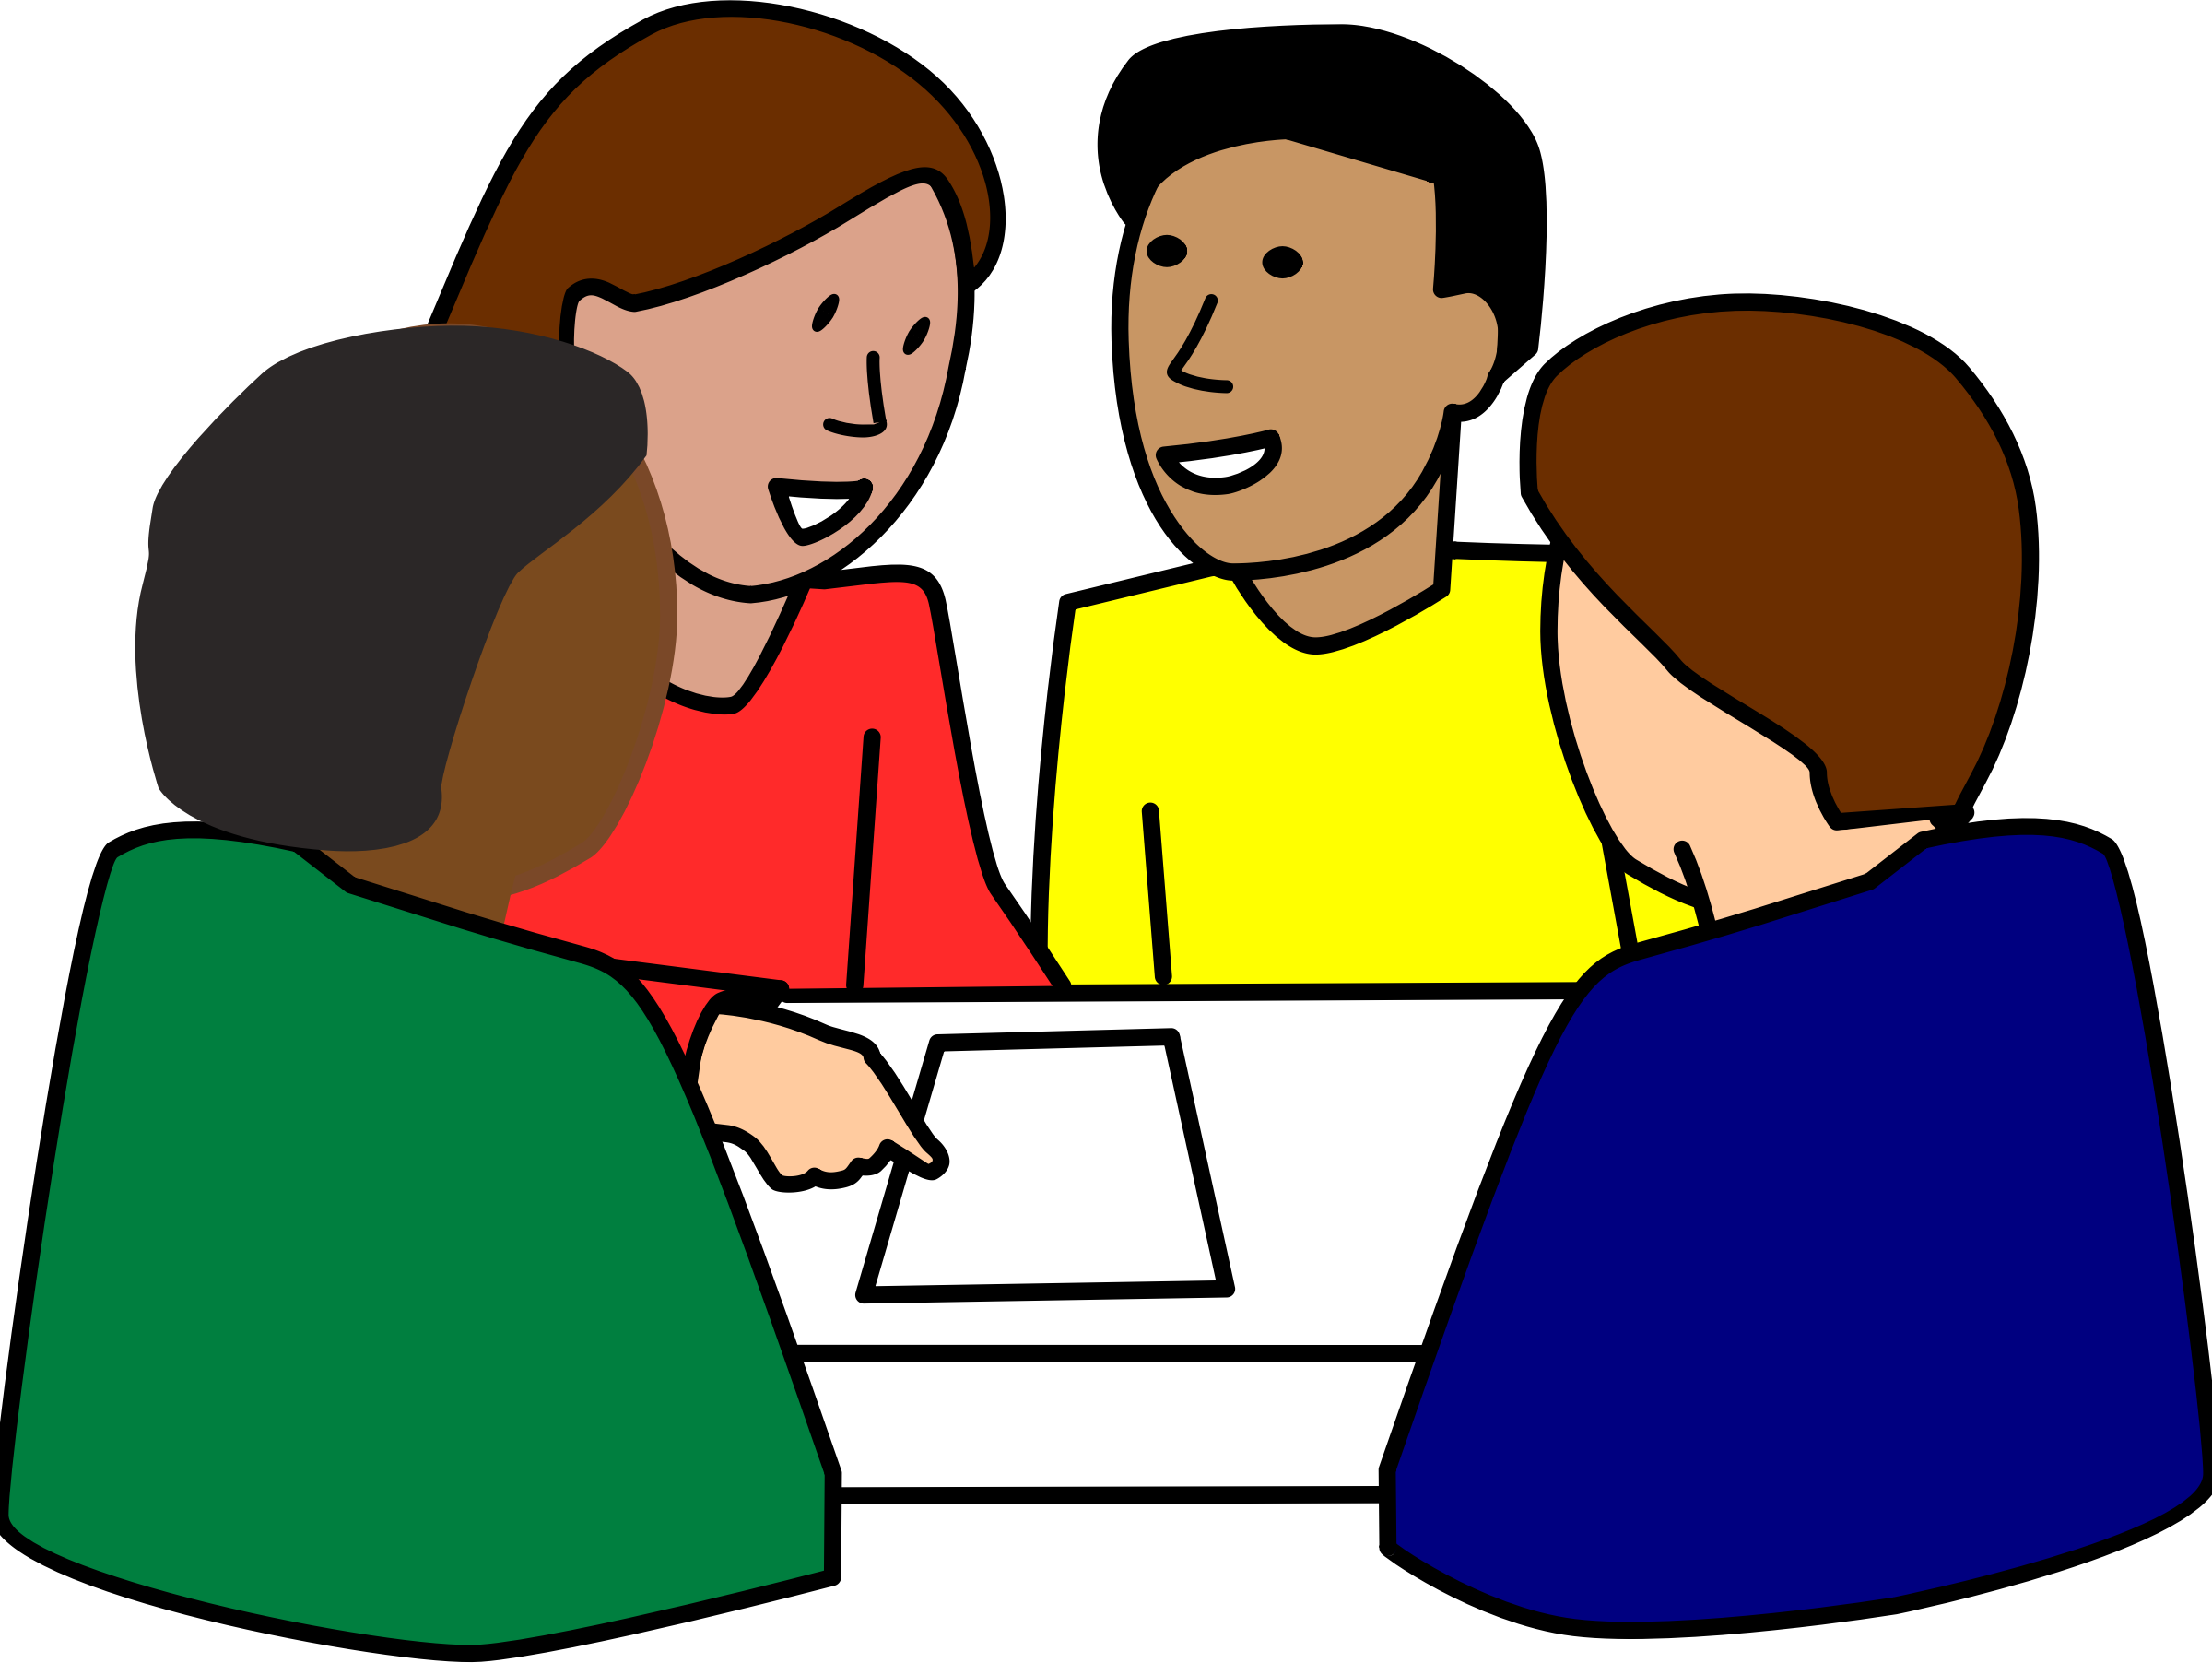 319 Group Work free clipart.